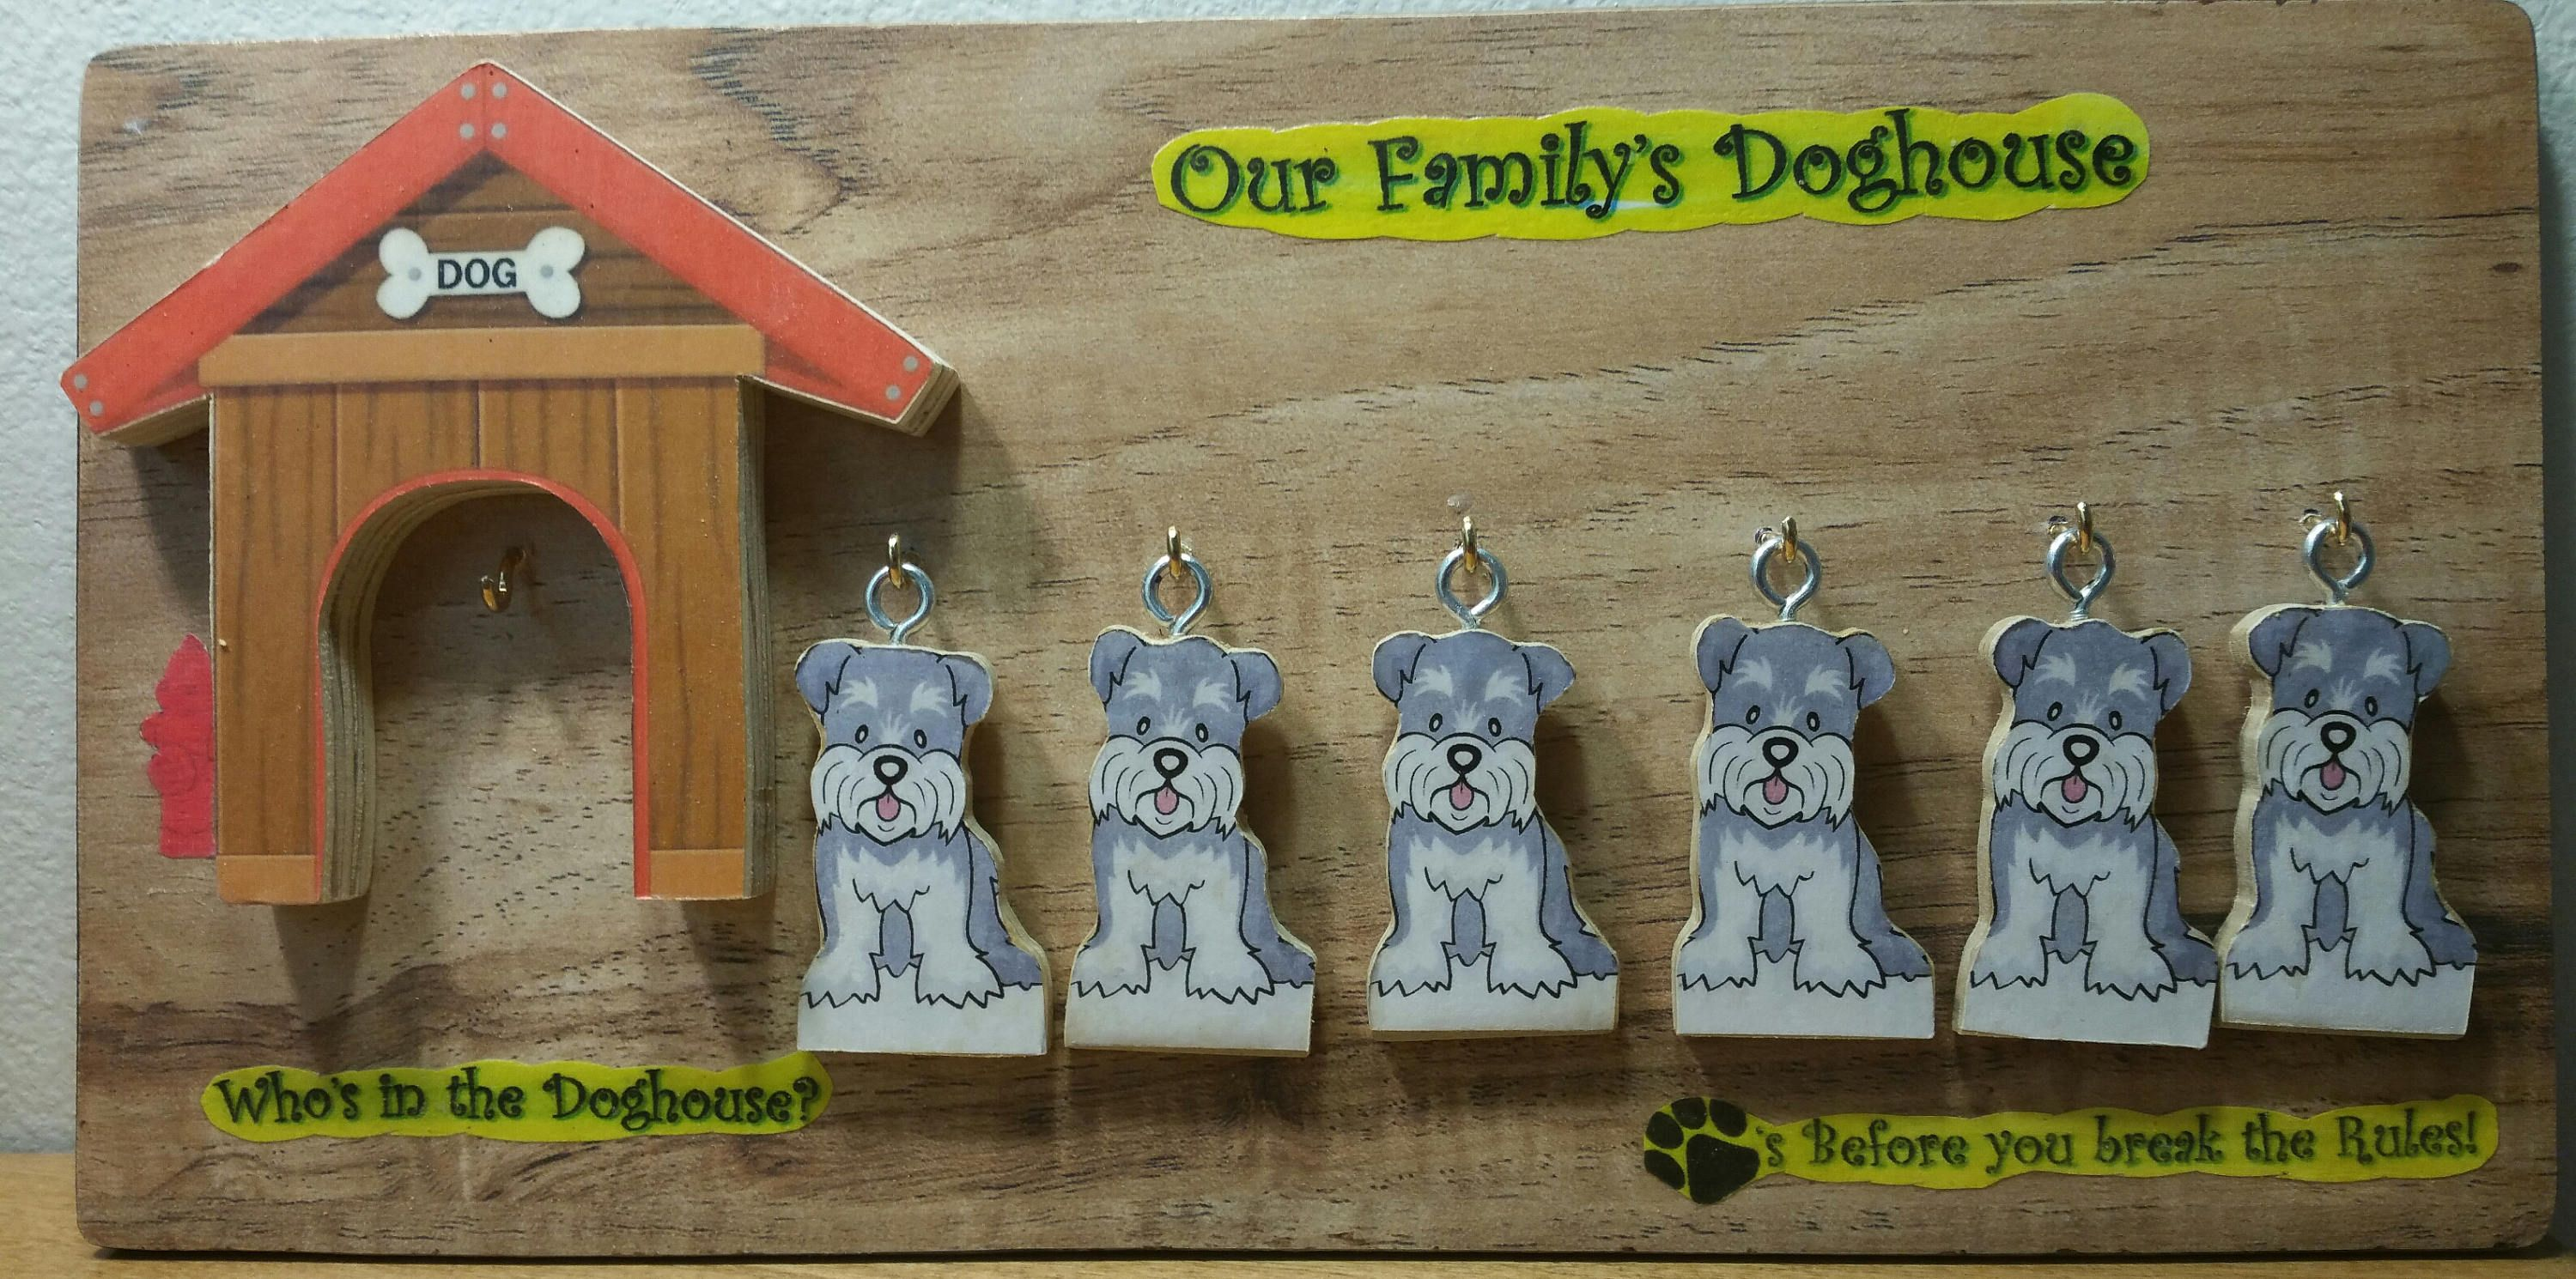 Who S In The Doghouse Family Of 6 Schnauzer Dogs Deluxe Wall